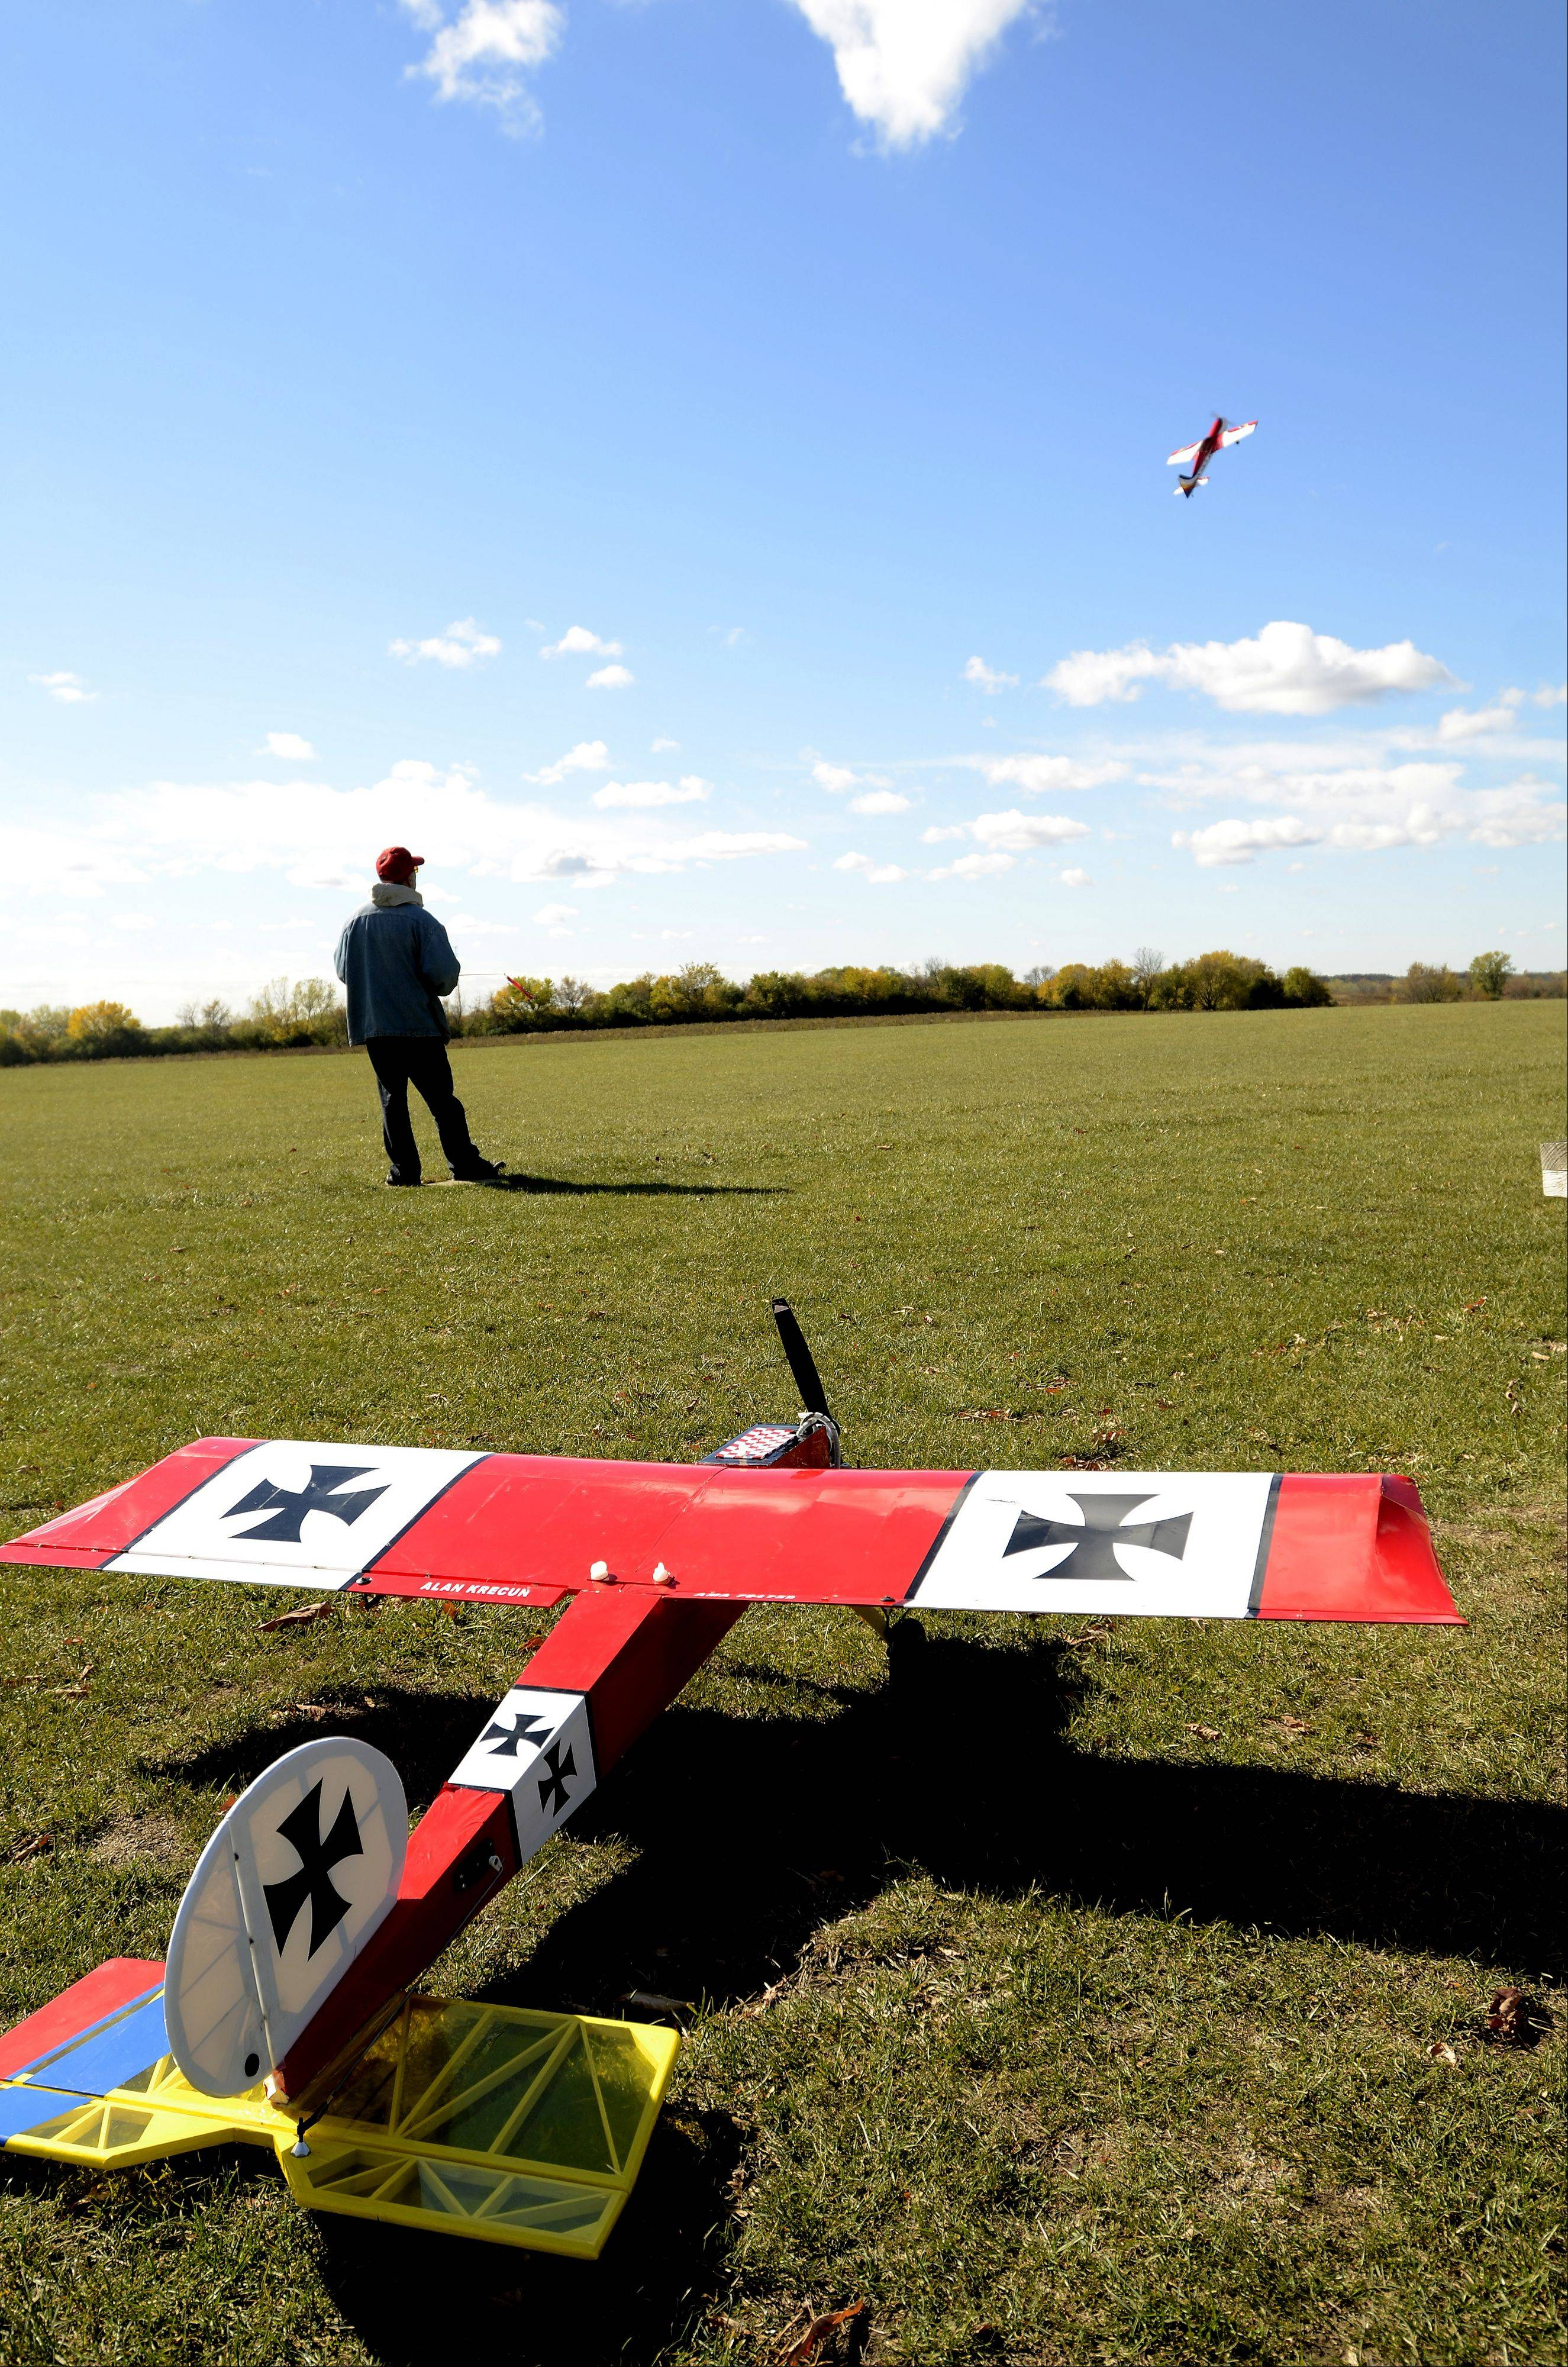 Model airplane enthusiasts can buy permits beginning Dec. 3 to fly their crafts in select DuPage County forest preserves.